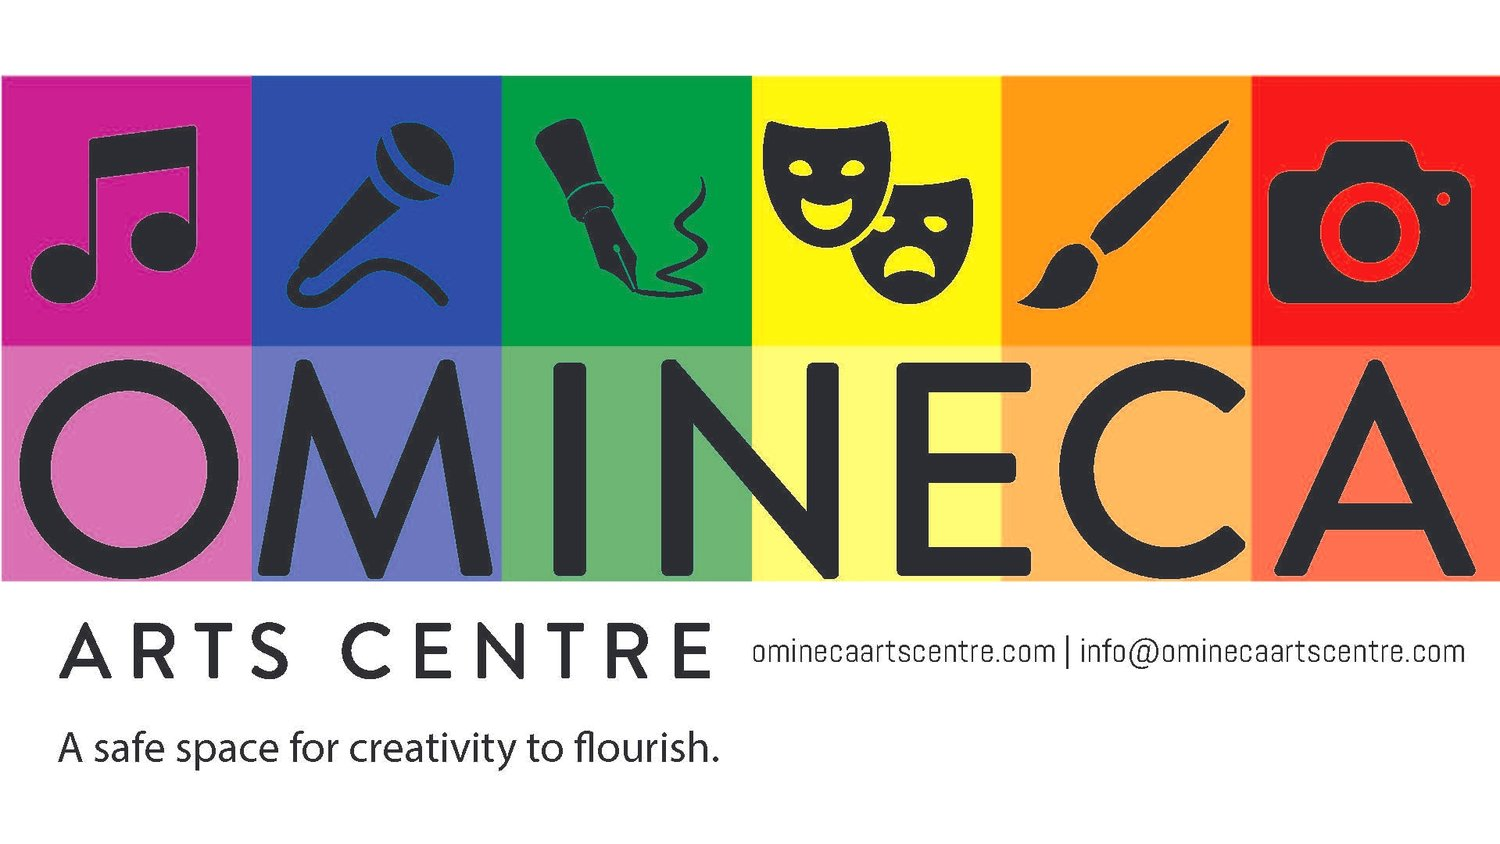 Omineca Arts Centre